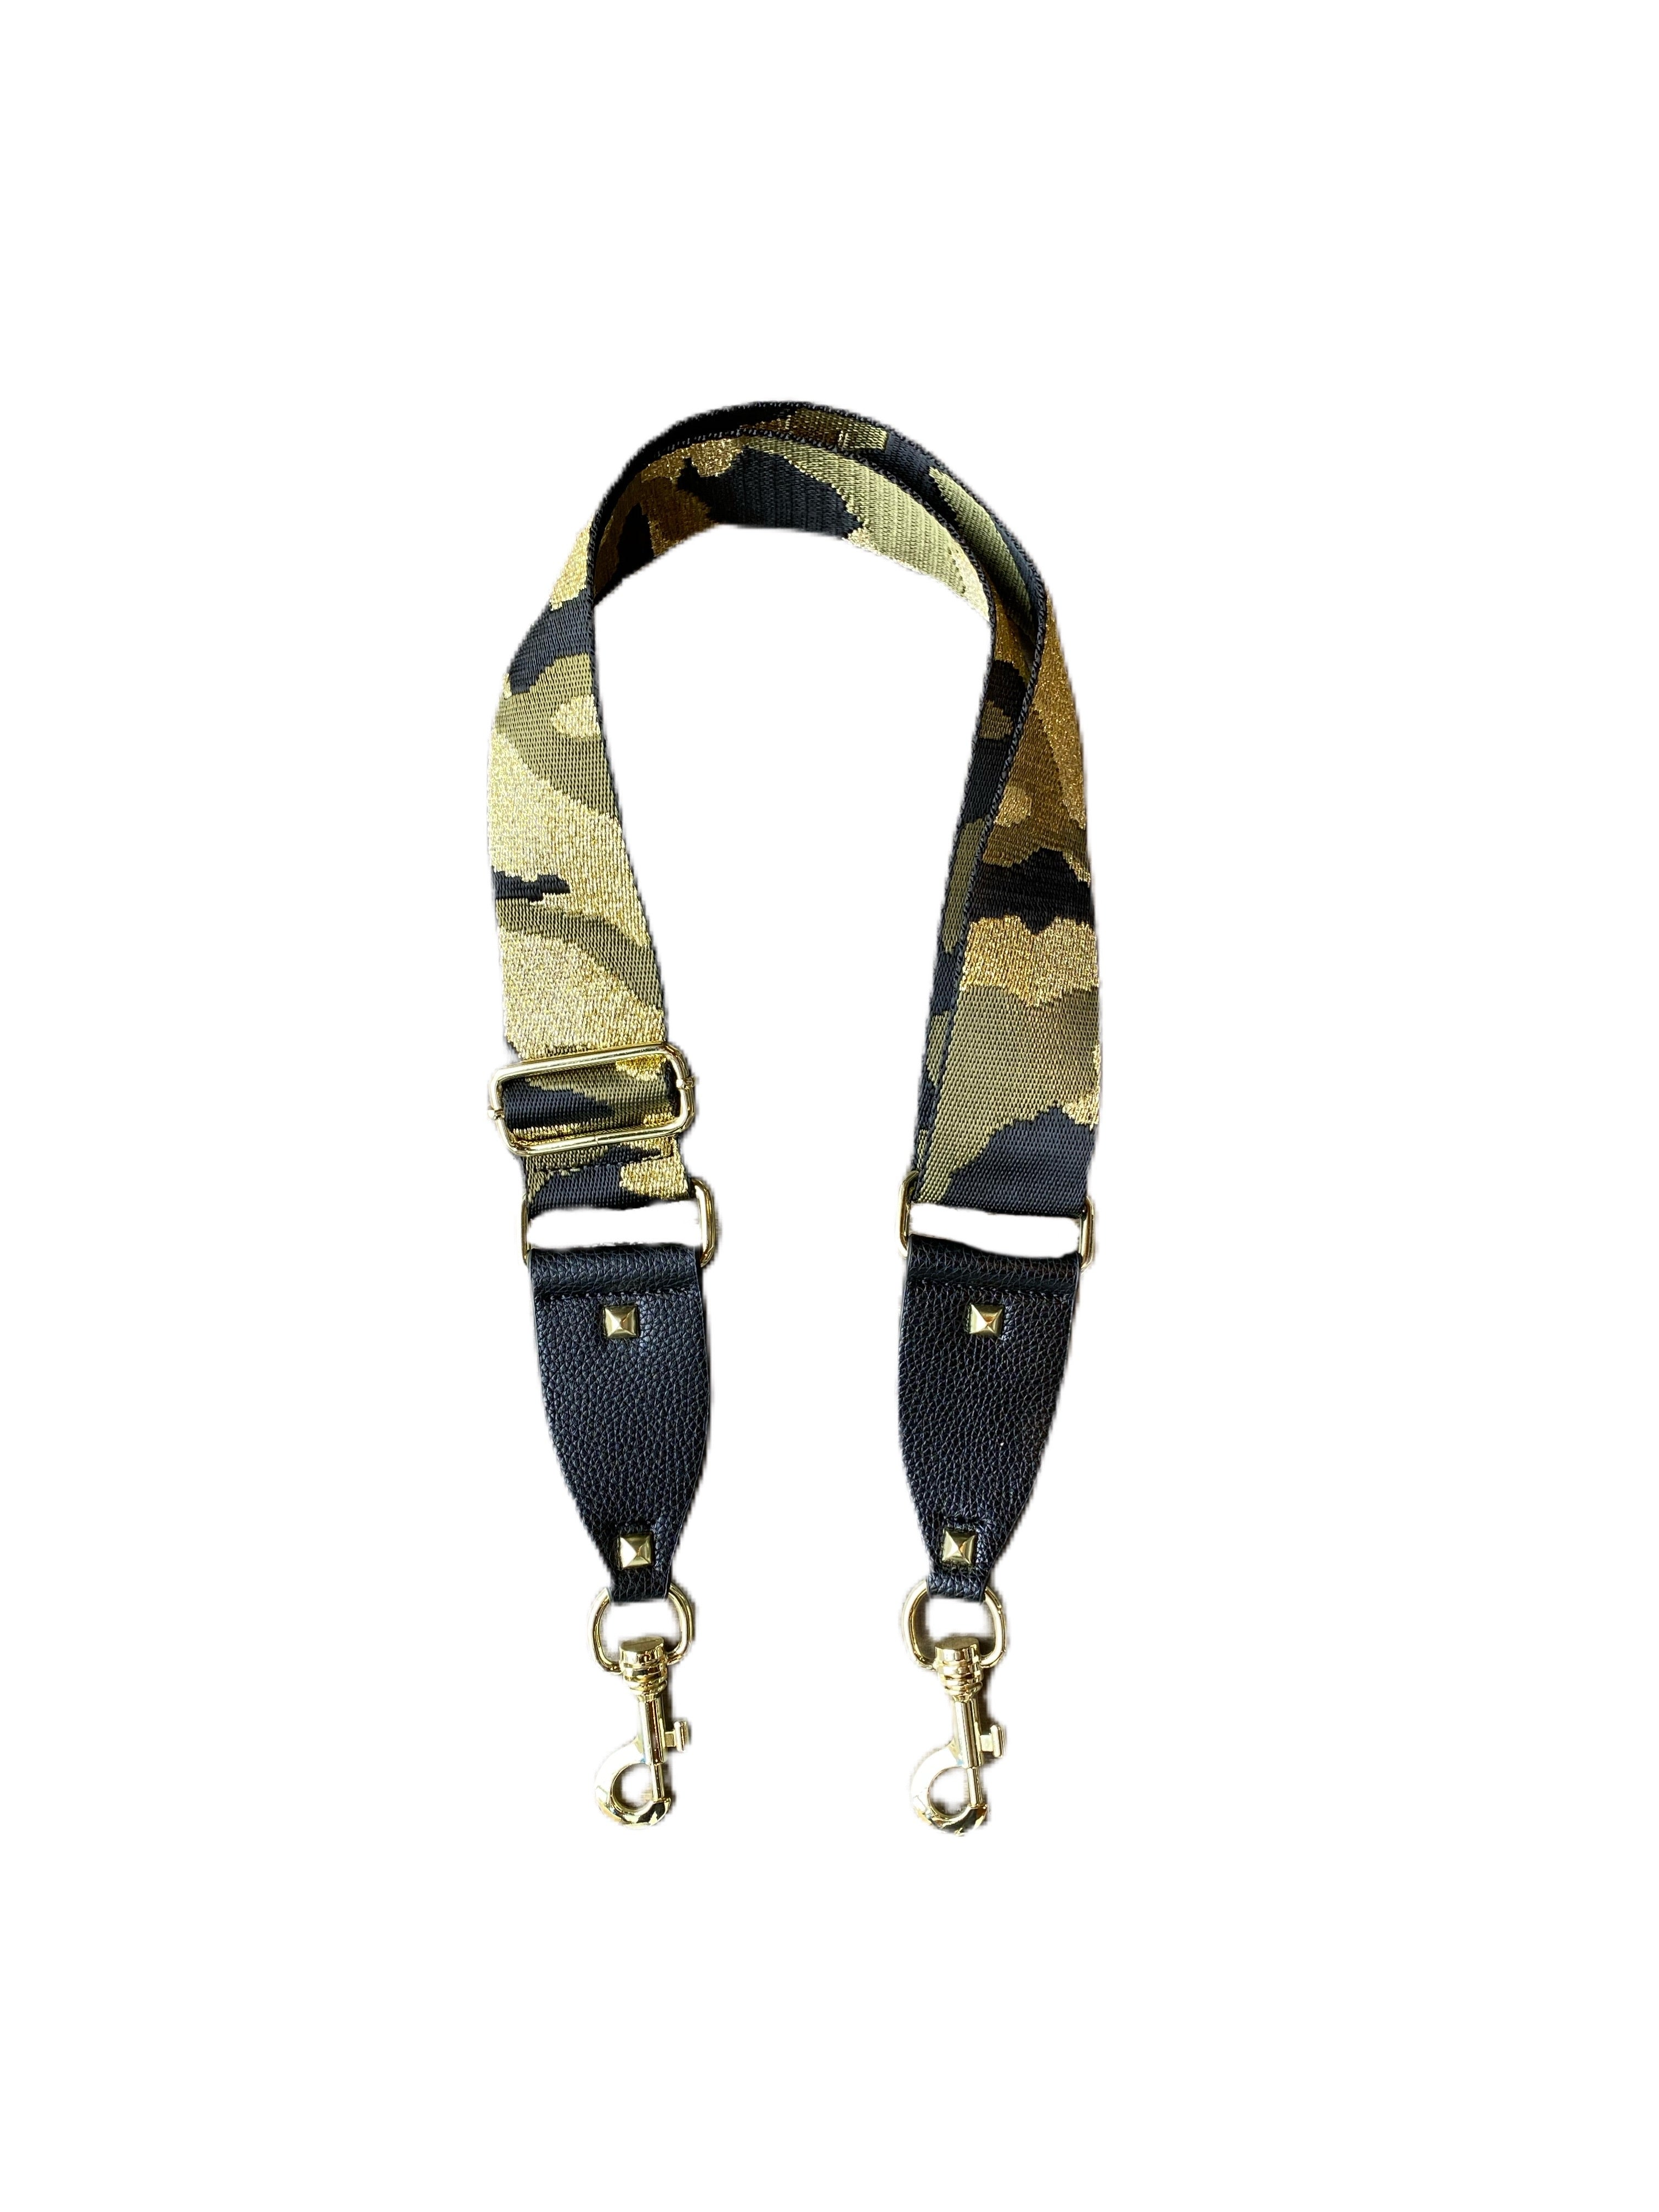 Adjustable Deluxe Bag Strap Black/Army/Gold Camouflage with Studs